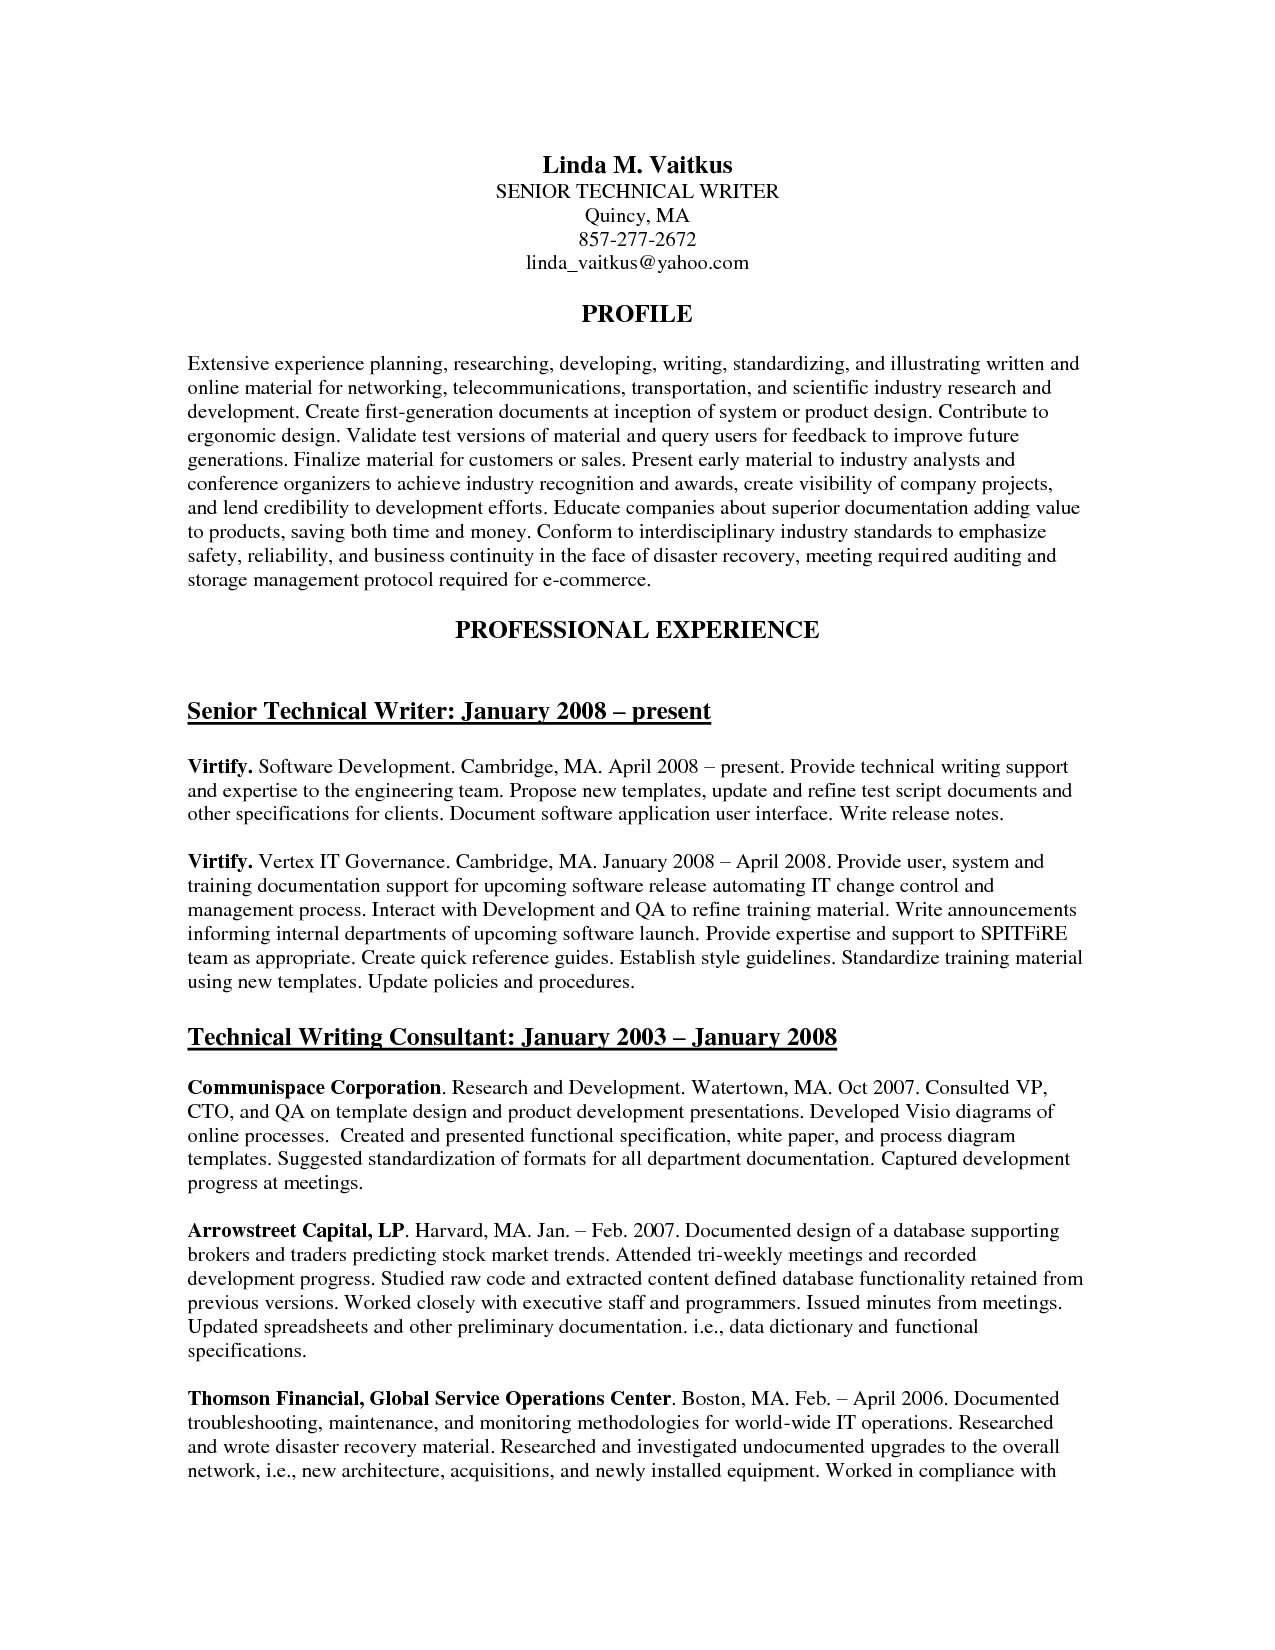 Resume Consultant Resume Writers Best Templatewriting A Resume Cover Letter Examples